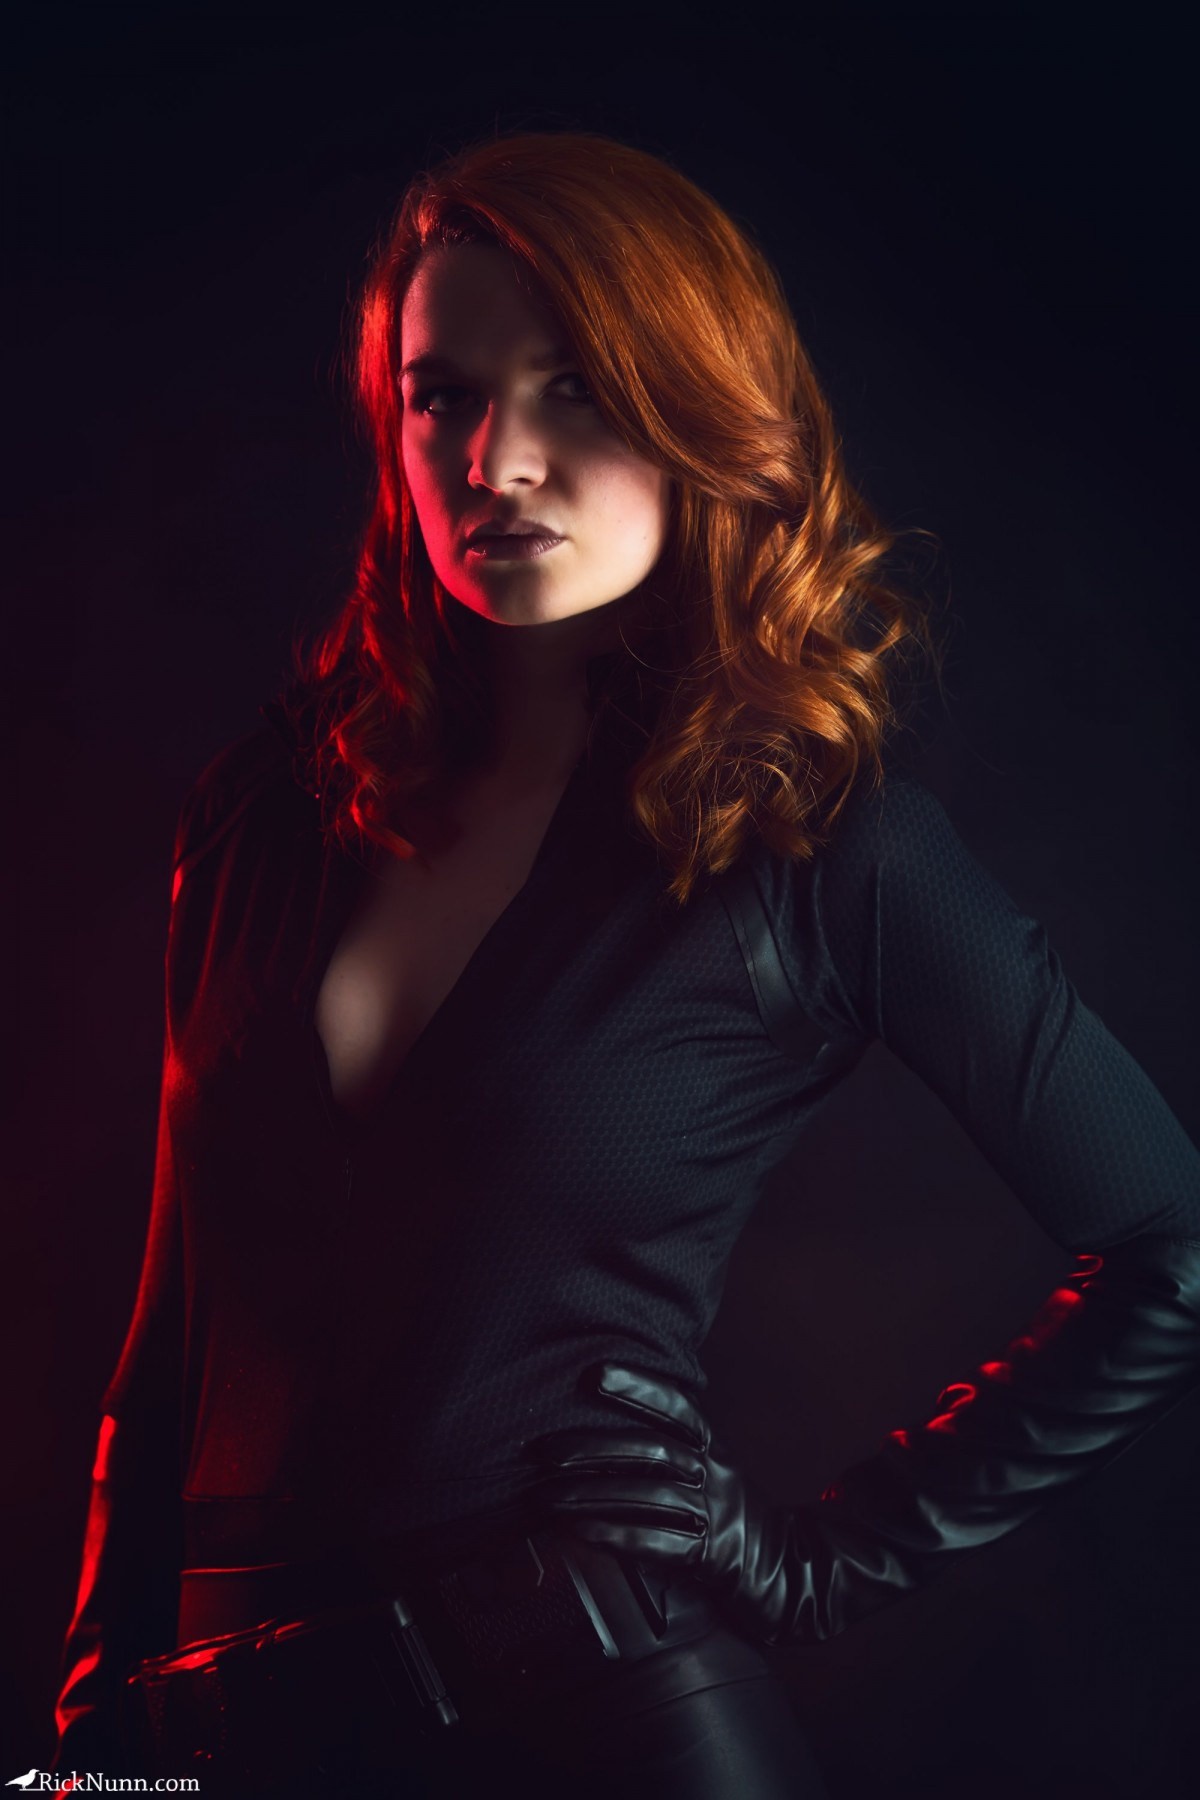 Black Widow - Strobist Portrait of Spadge as Black Widow Photographed by Rick Nunn